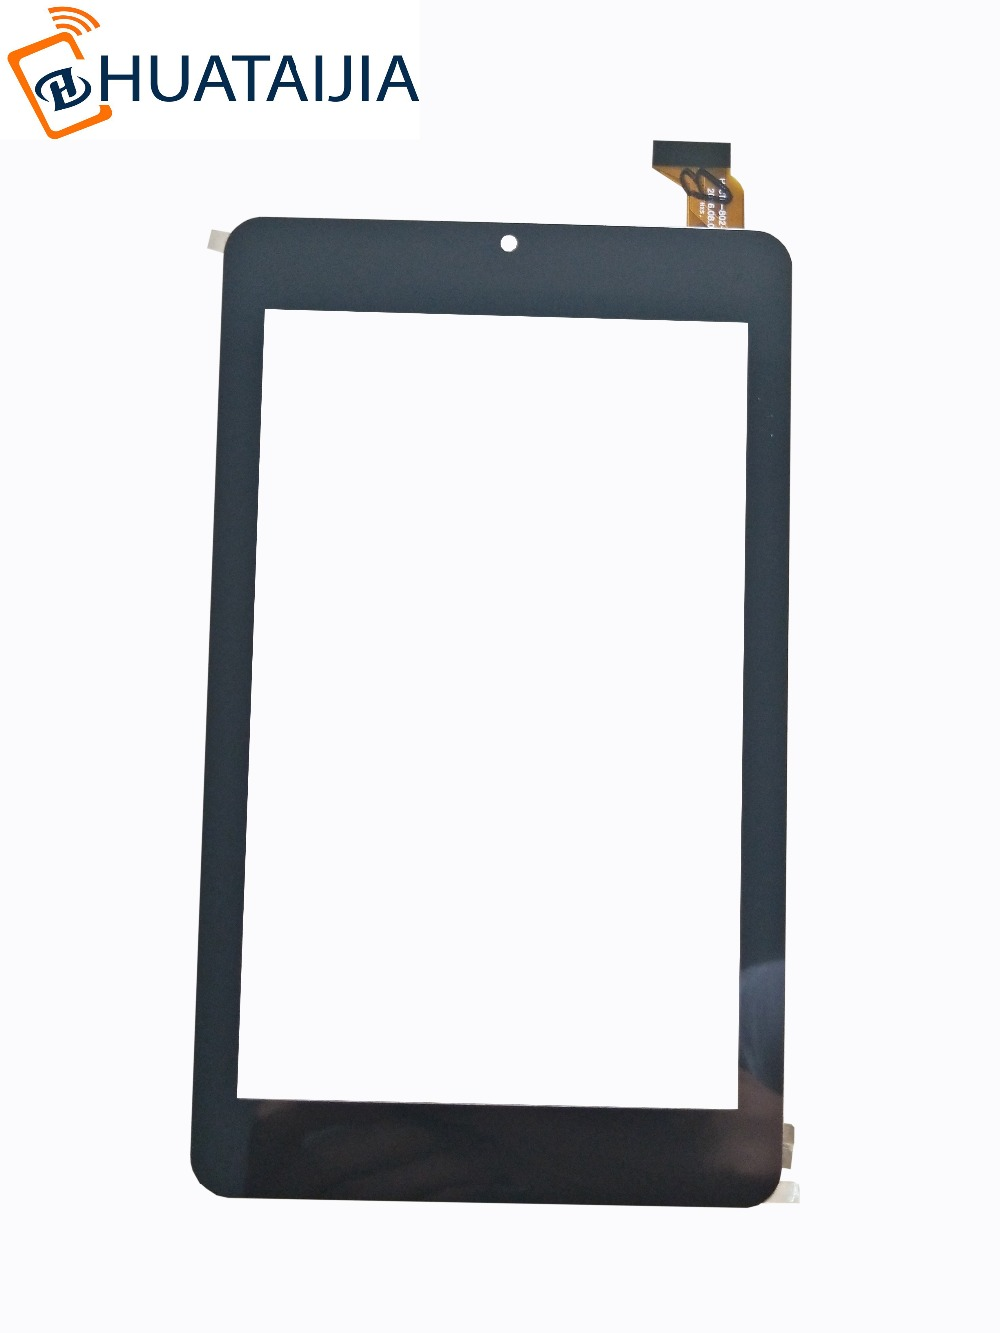 New Capacitive touch screen For 7 Irbis TZ07 TZ 07 tz06 tz 06 Touch Panel Digitizer Sensor Replacement Free Shipping replacement lcd digitizer capacitive touch screen for lg vs980 f320 d801 d803 black